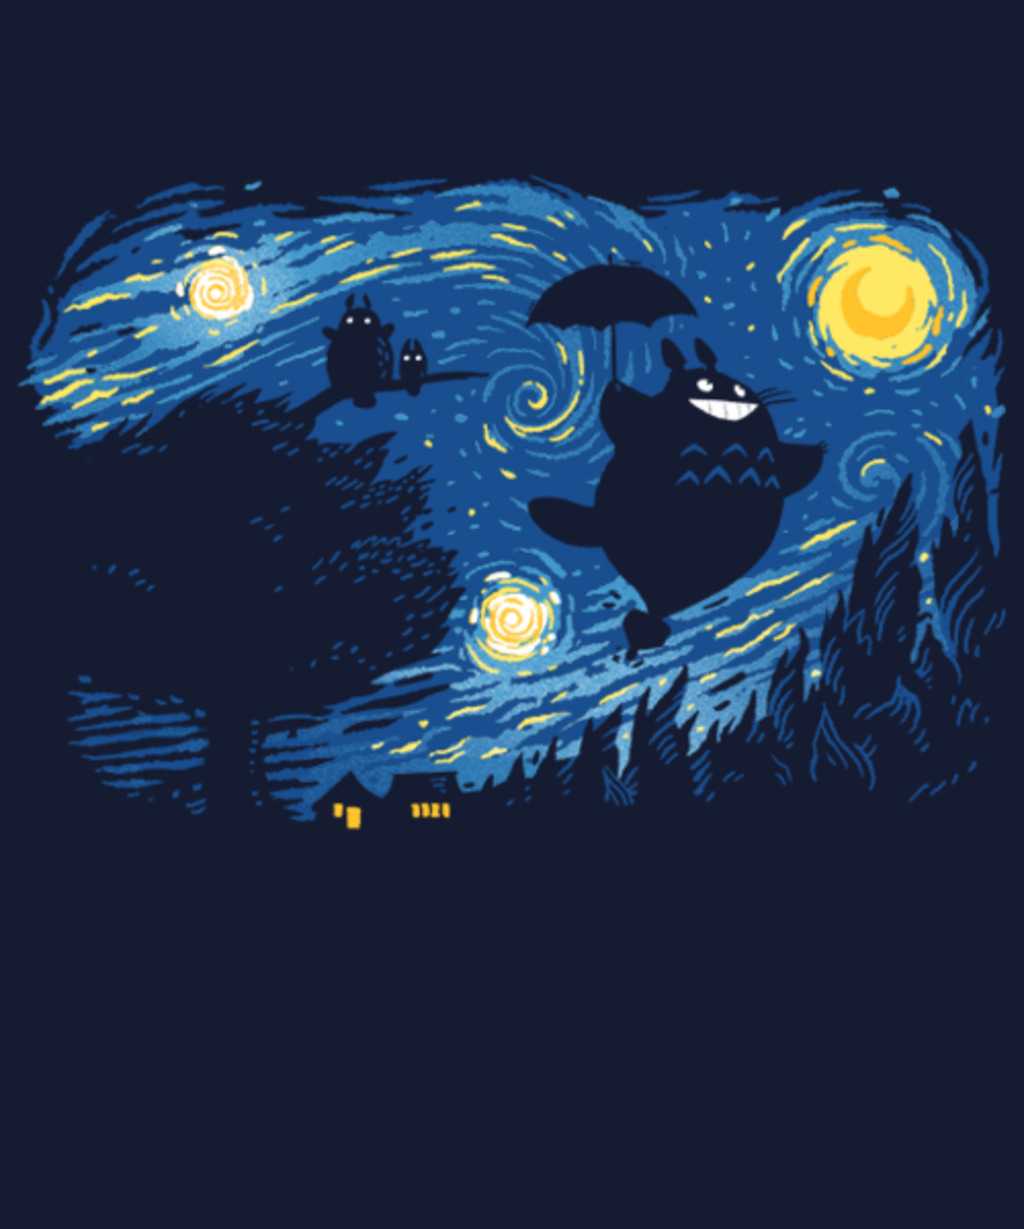 Qwertee: A Night for Spirits